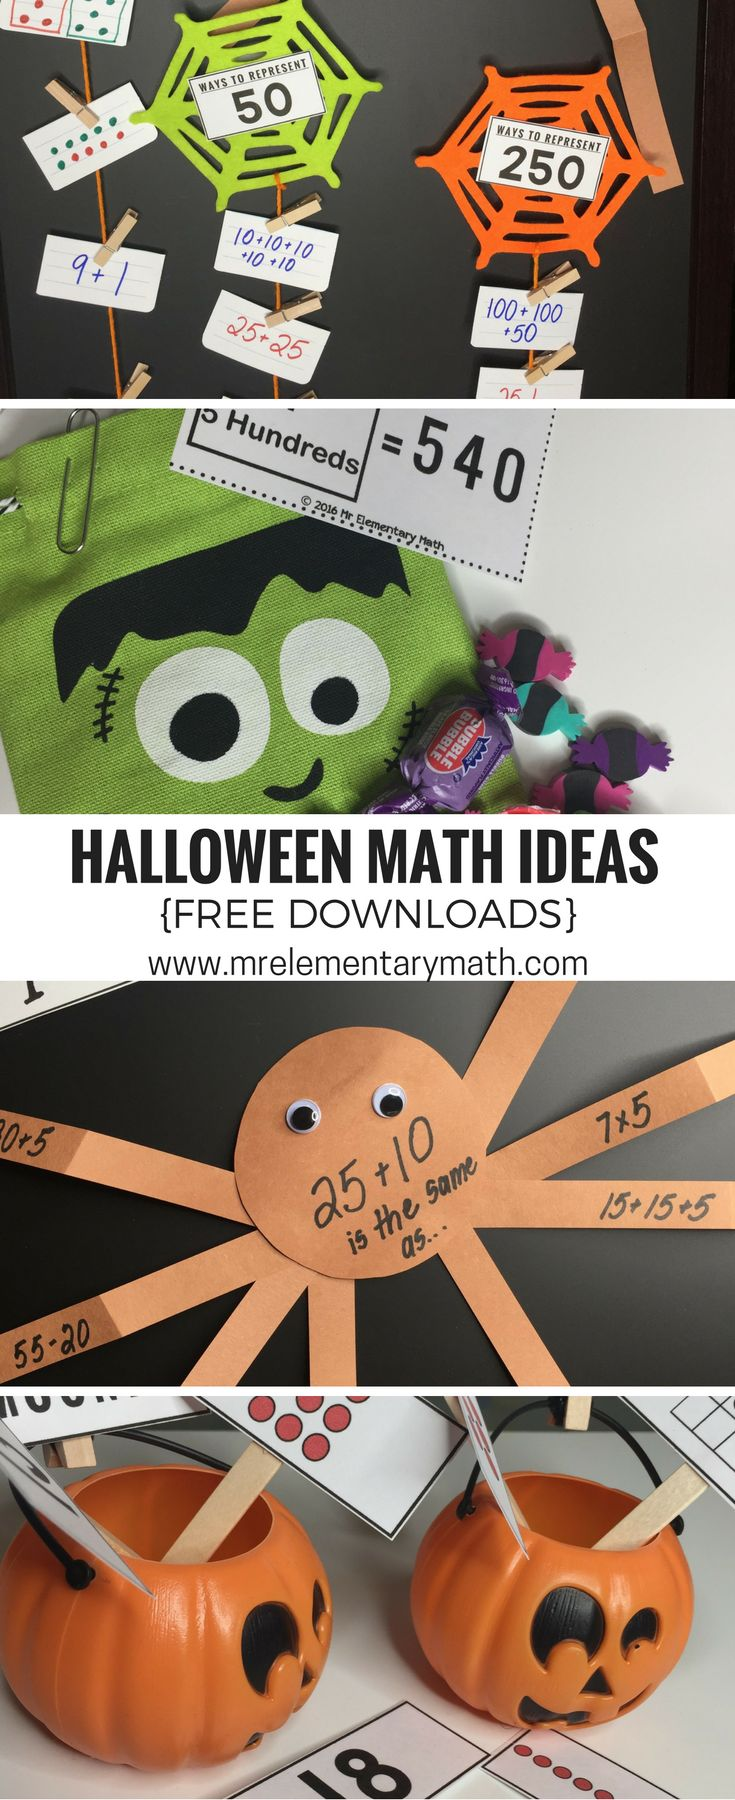 try these fun halloween math activities - Online Halloween Math Games